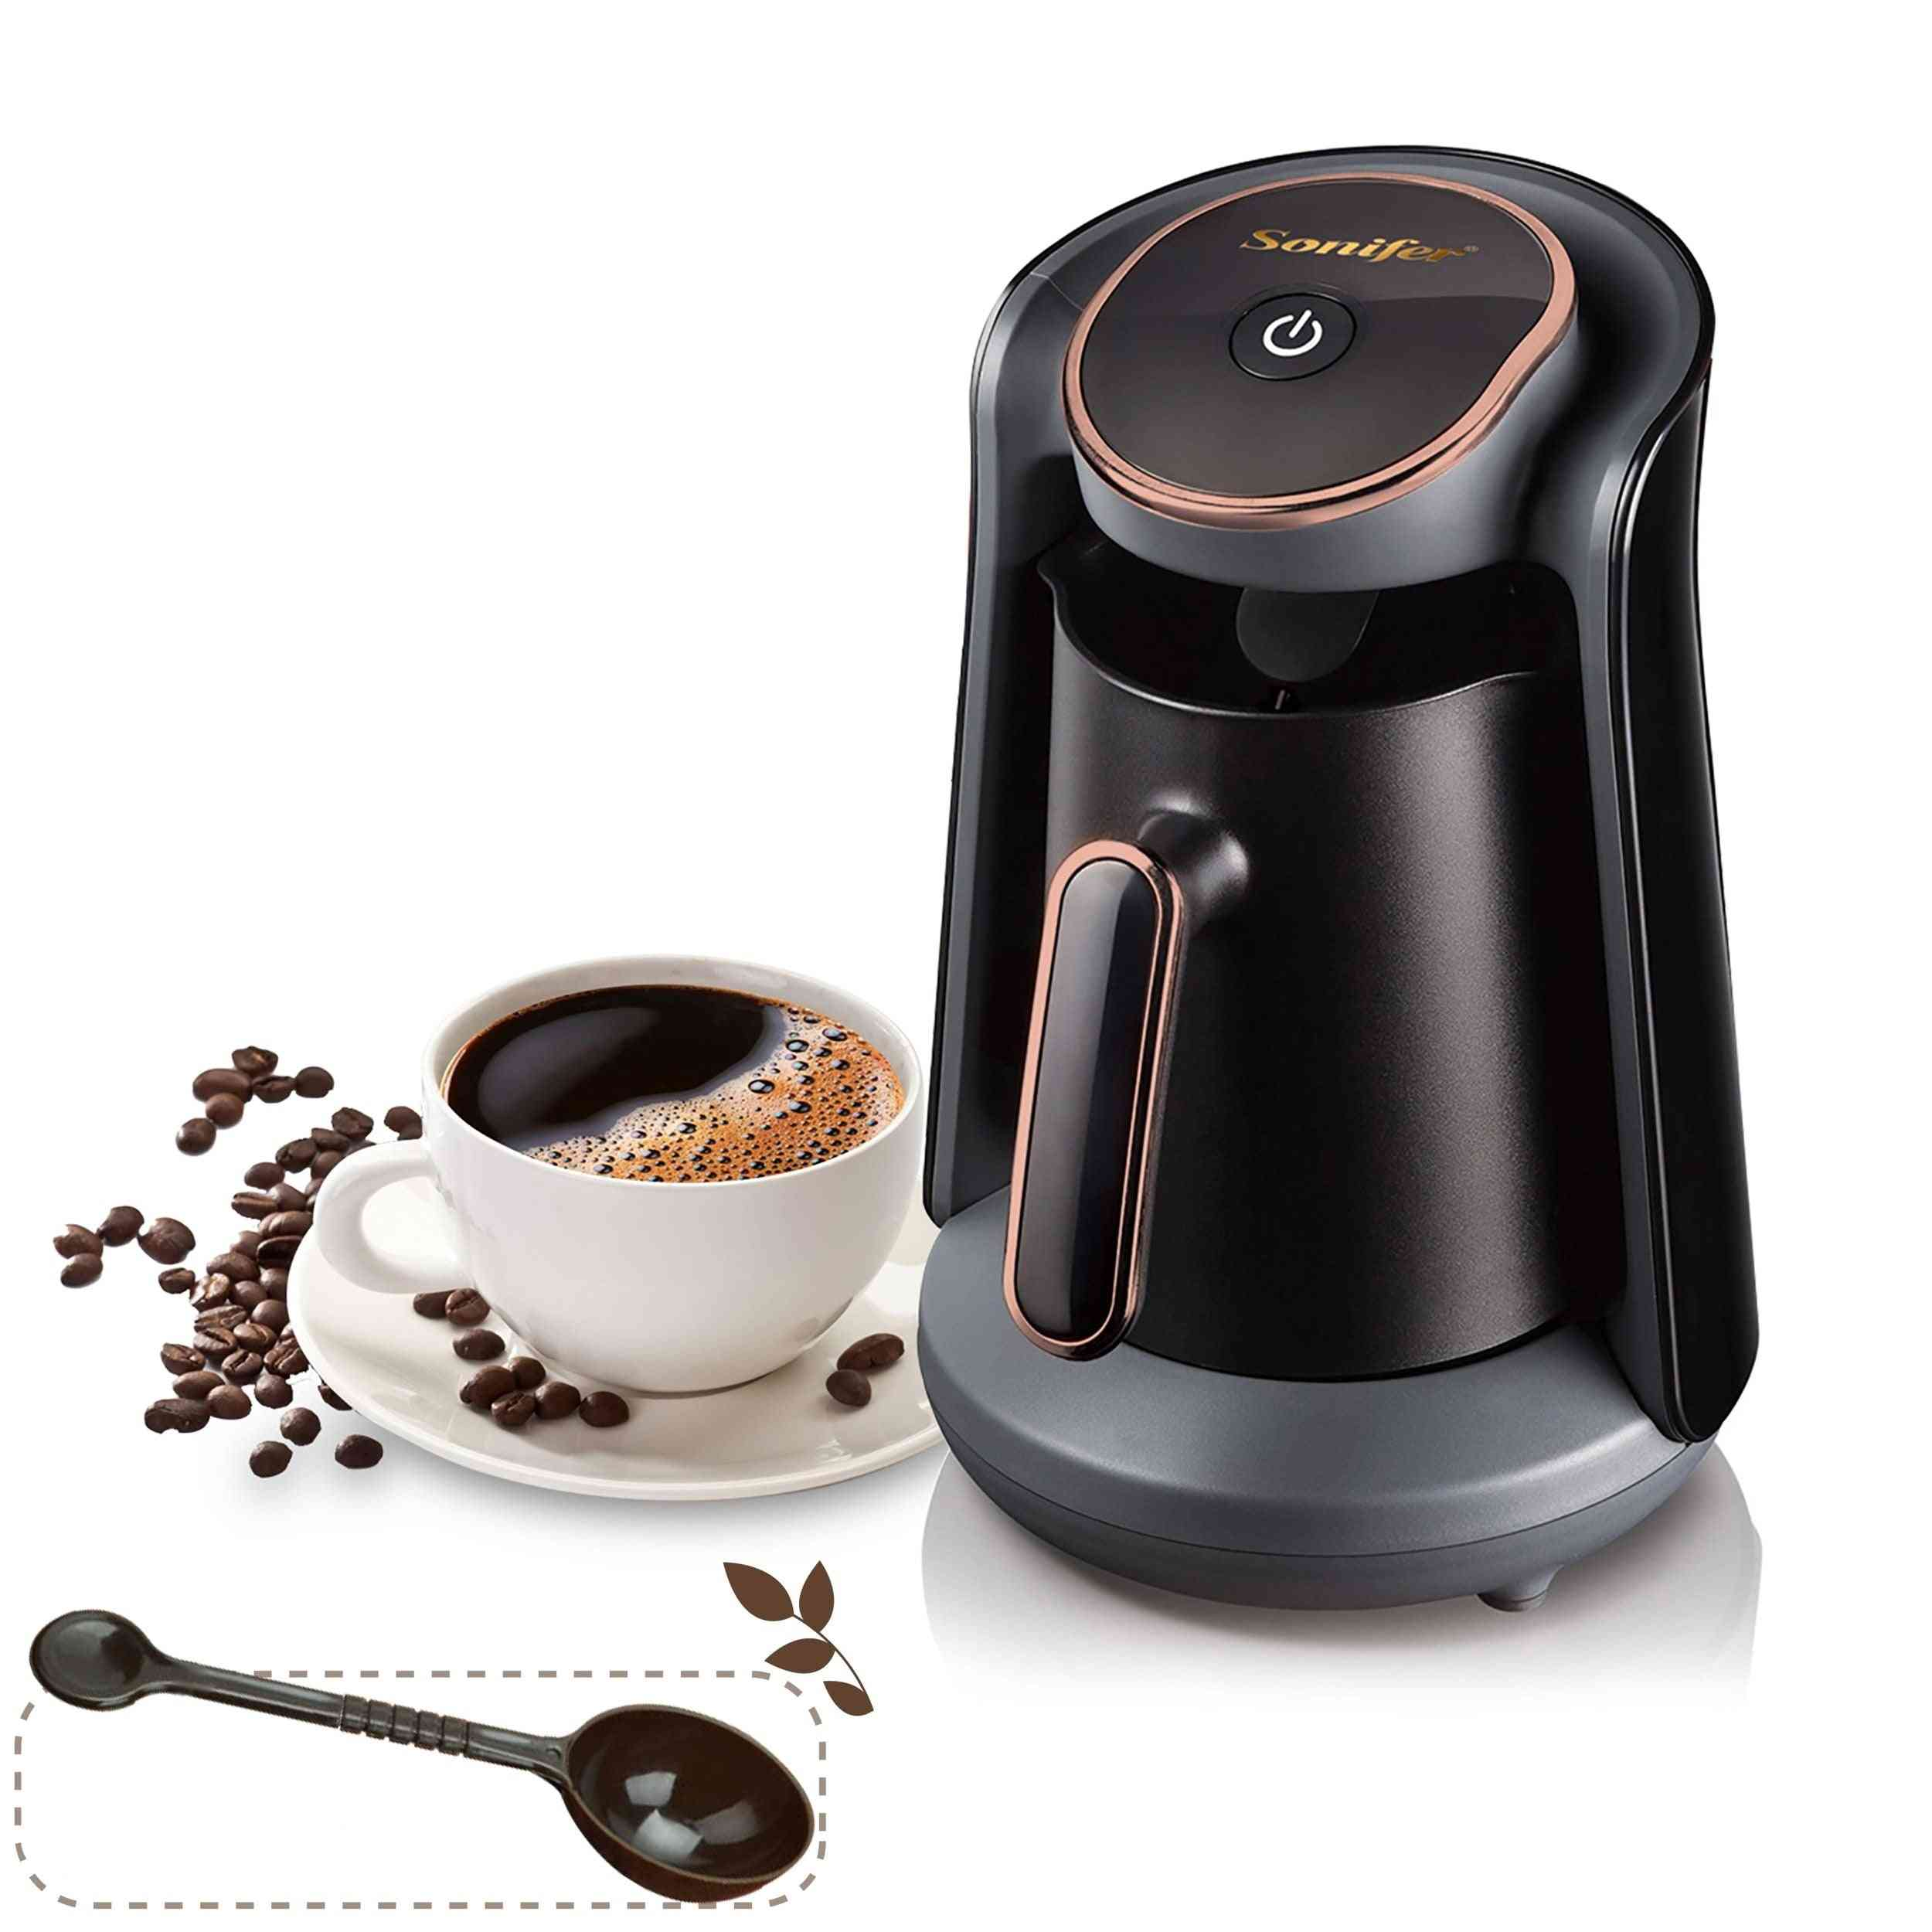 Portable Automatic Turkish Coffee Maker, Sound Warning System